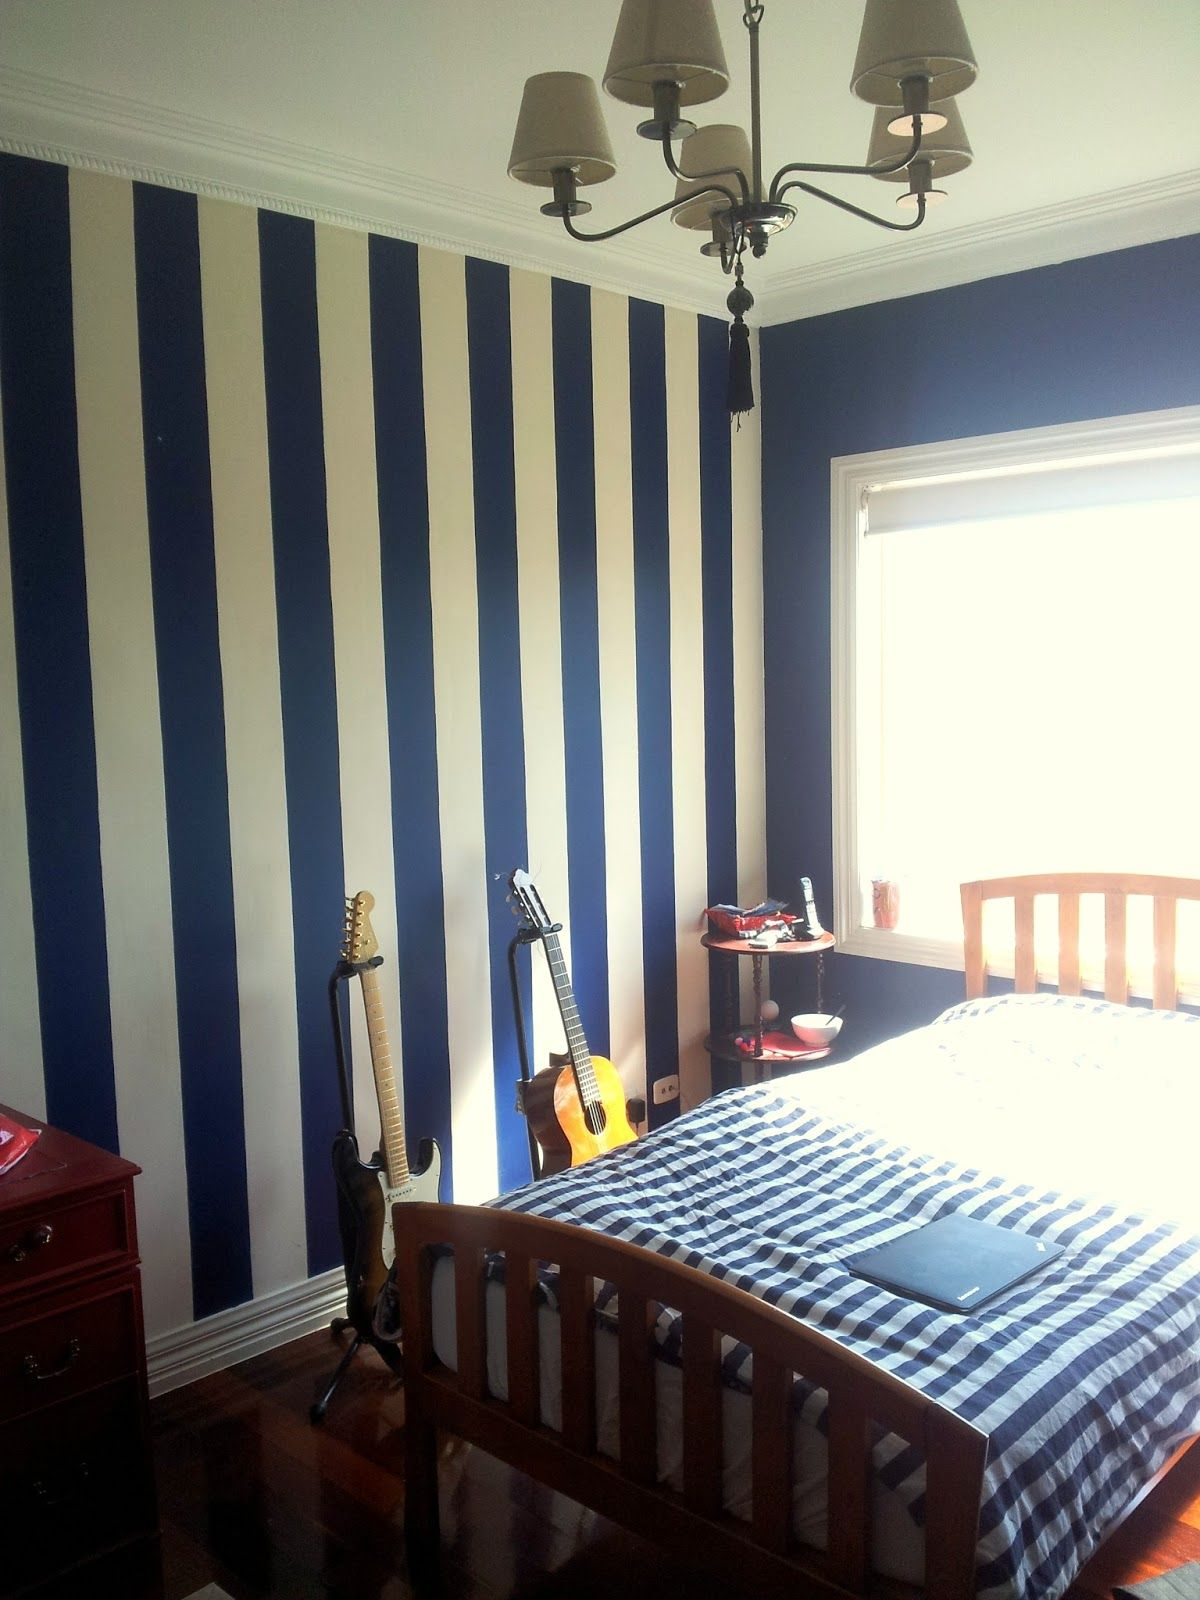 Stripes In Navy On One Wall Behind Headboard